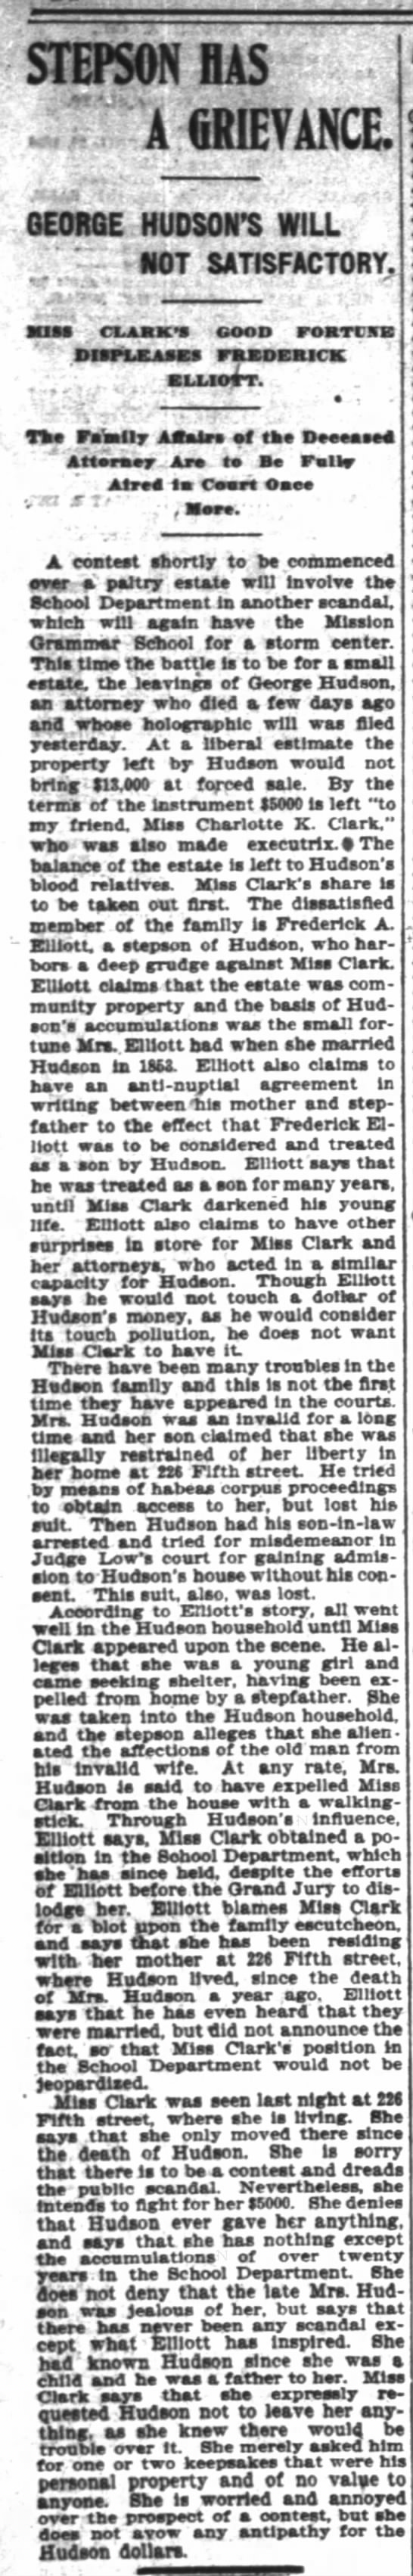 San Francisco Chronicles, San Francisco, CA 28 Apr 1898 - STEPSON MS fjs A GRIEVANCE GEORGE HUDSONS WILL...